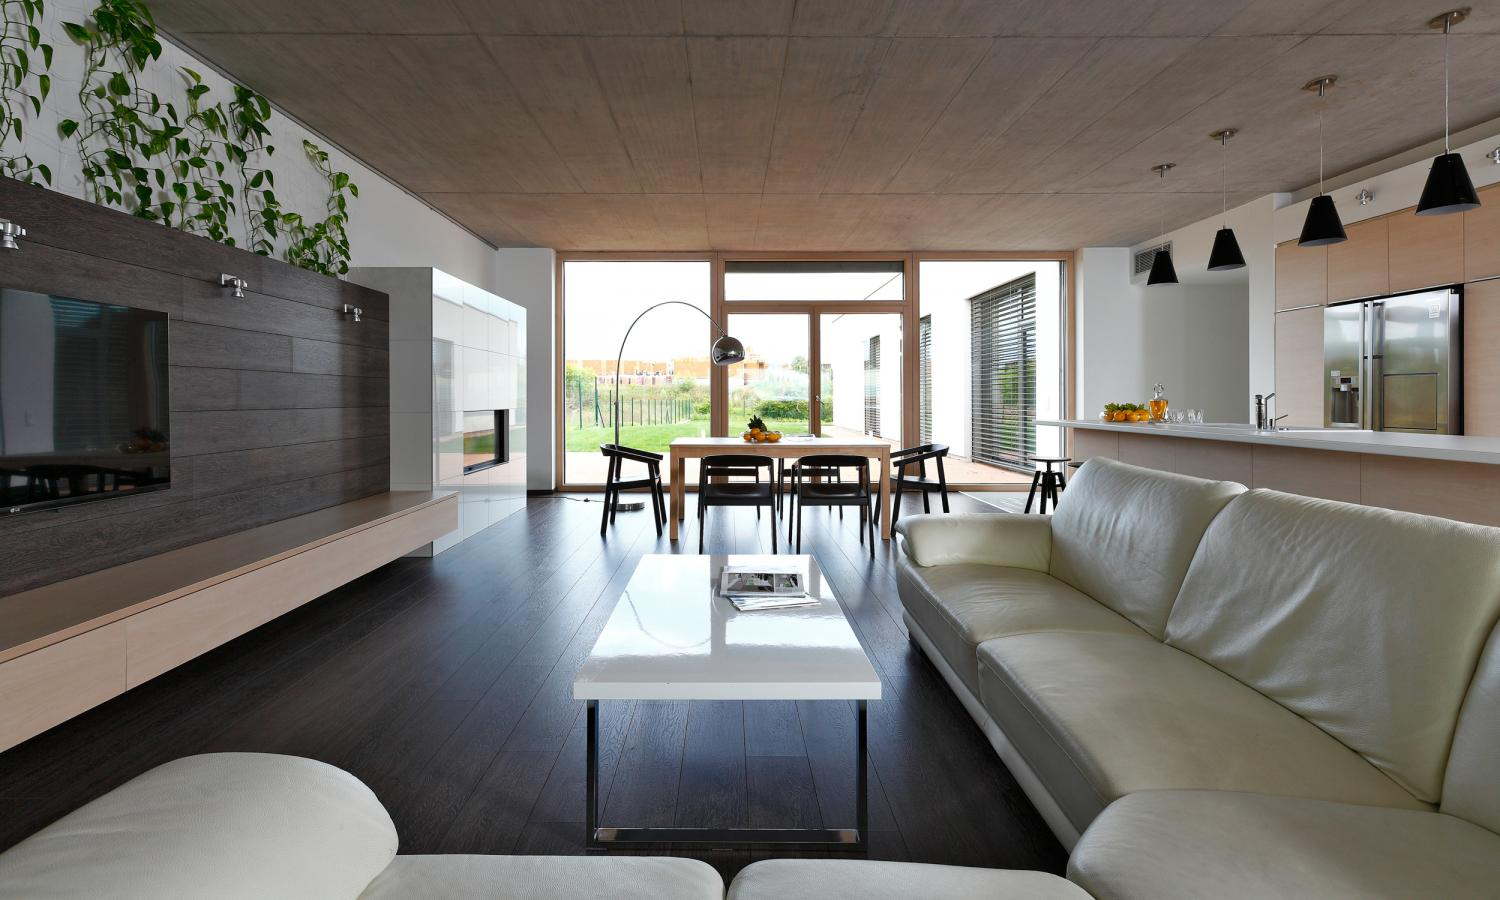 Open Living Room - Indoor plant inspiration to transform your space